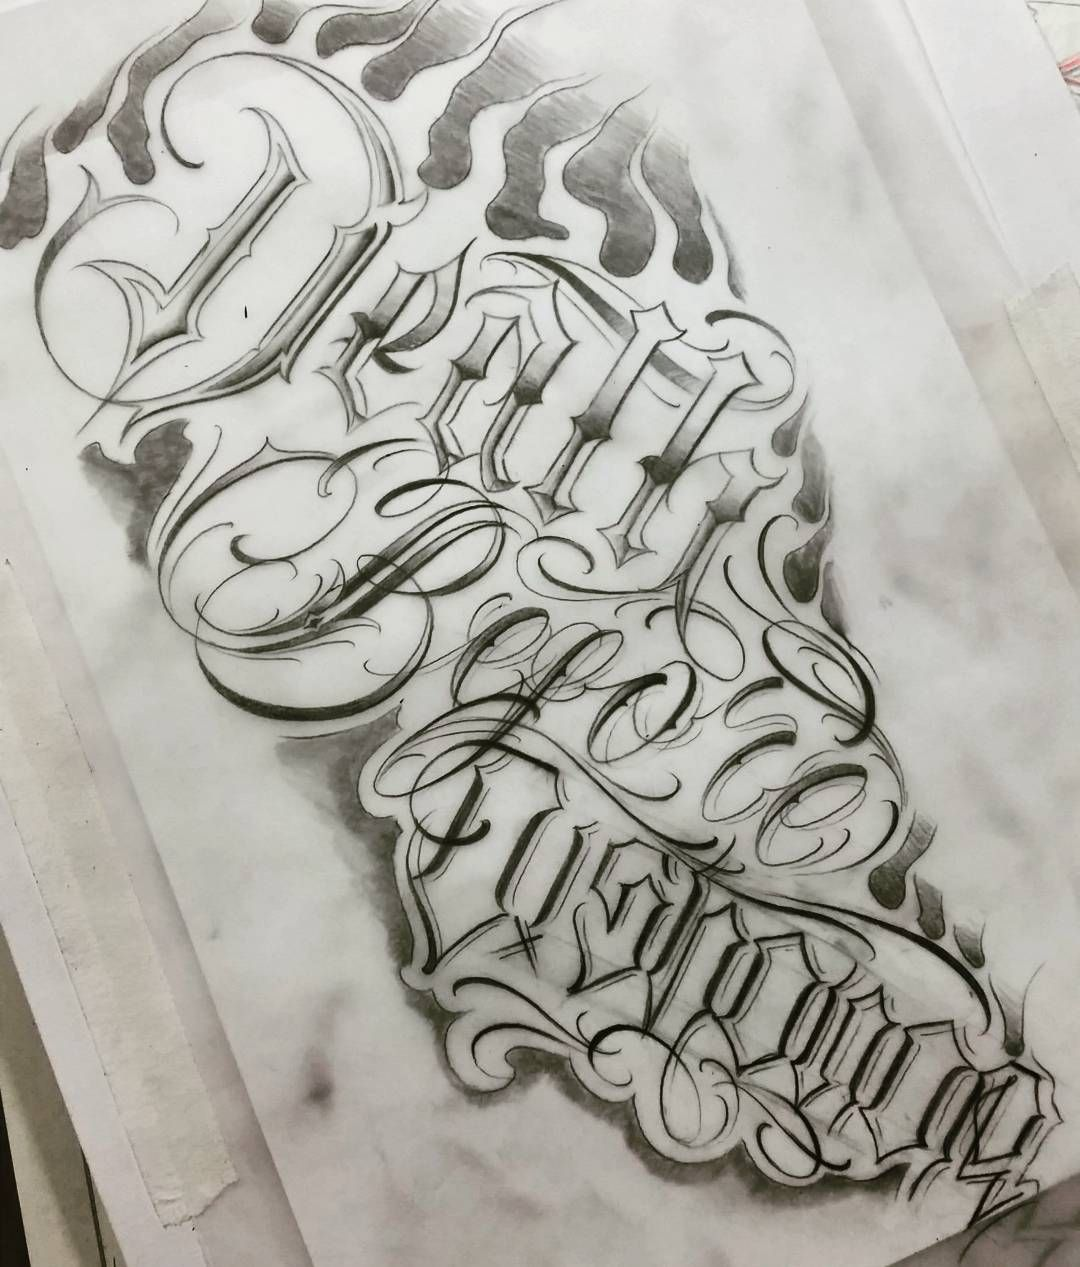 Pin by Stephanie Garza on Awesome tattoos | Tattoo lettering fonts